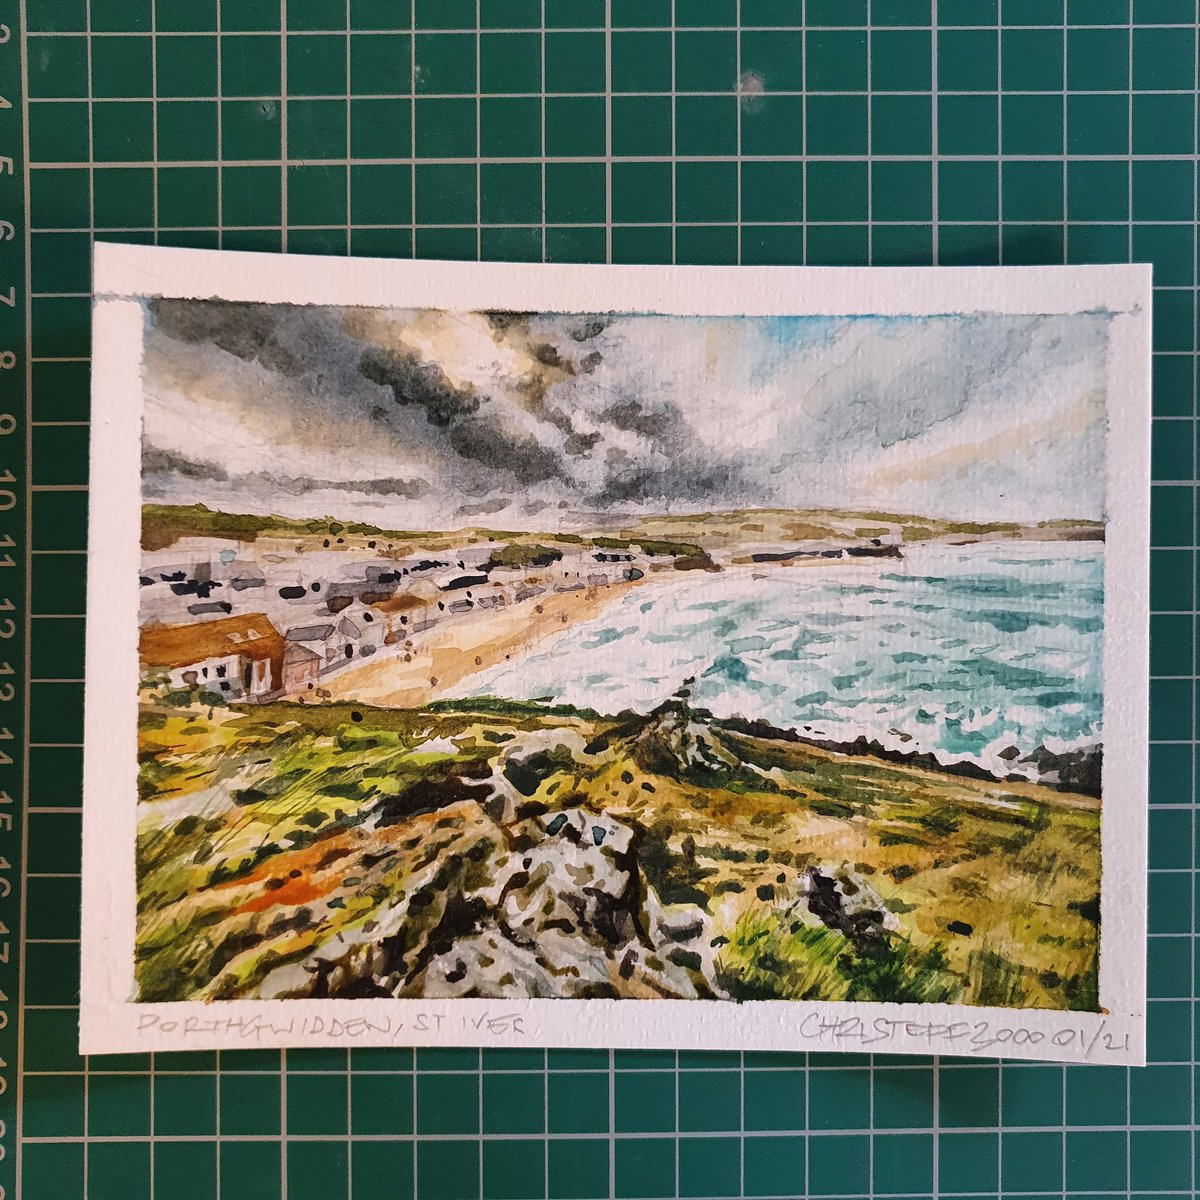 Just popped my postcard #Watercolourpainting of St Ives, #Cornwall in the post for this yr's @twitrartexhibit - fare ye well in the mail!